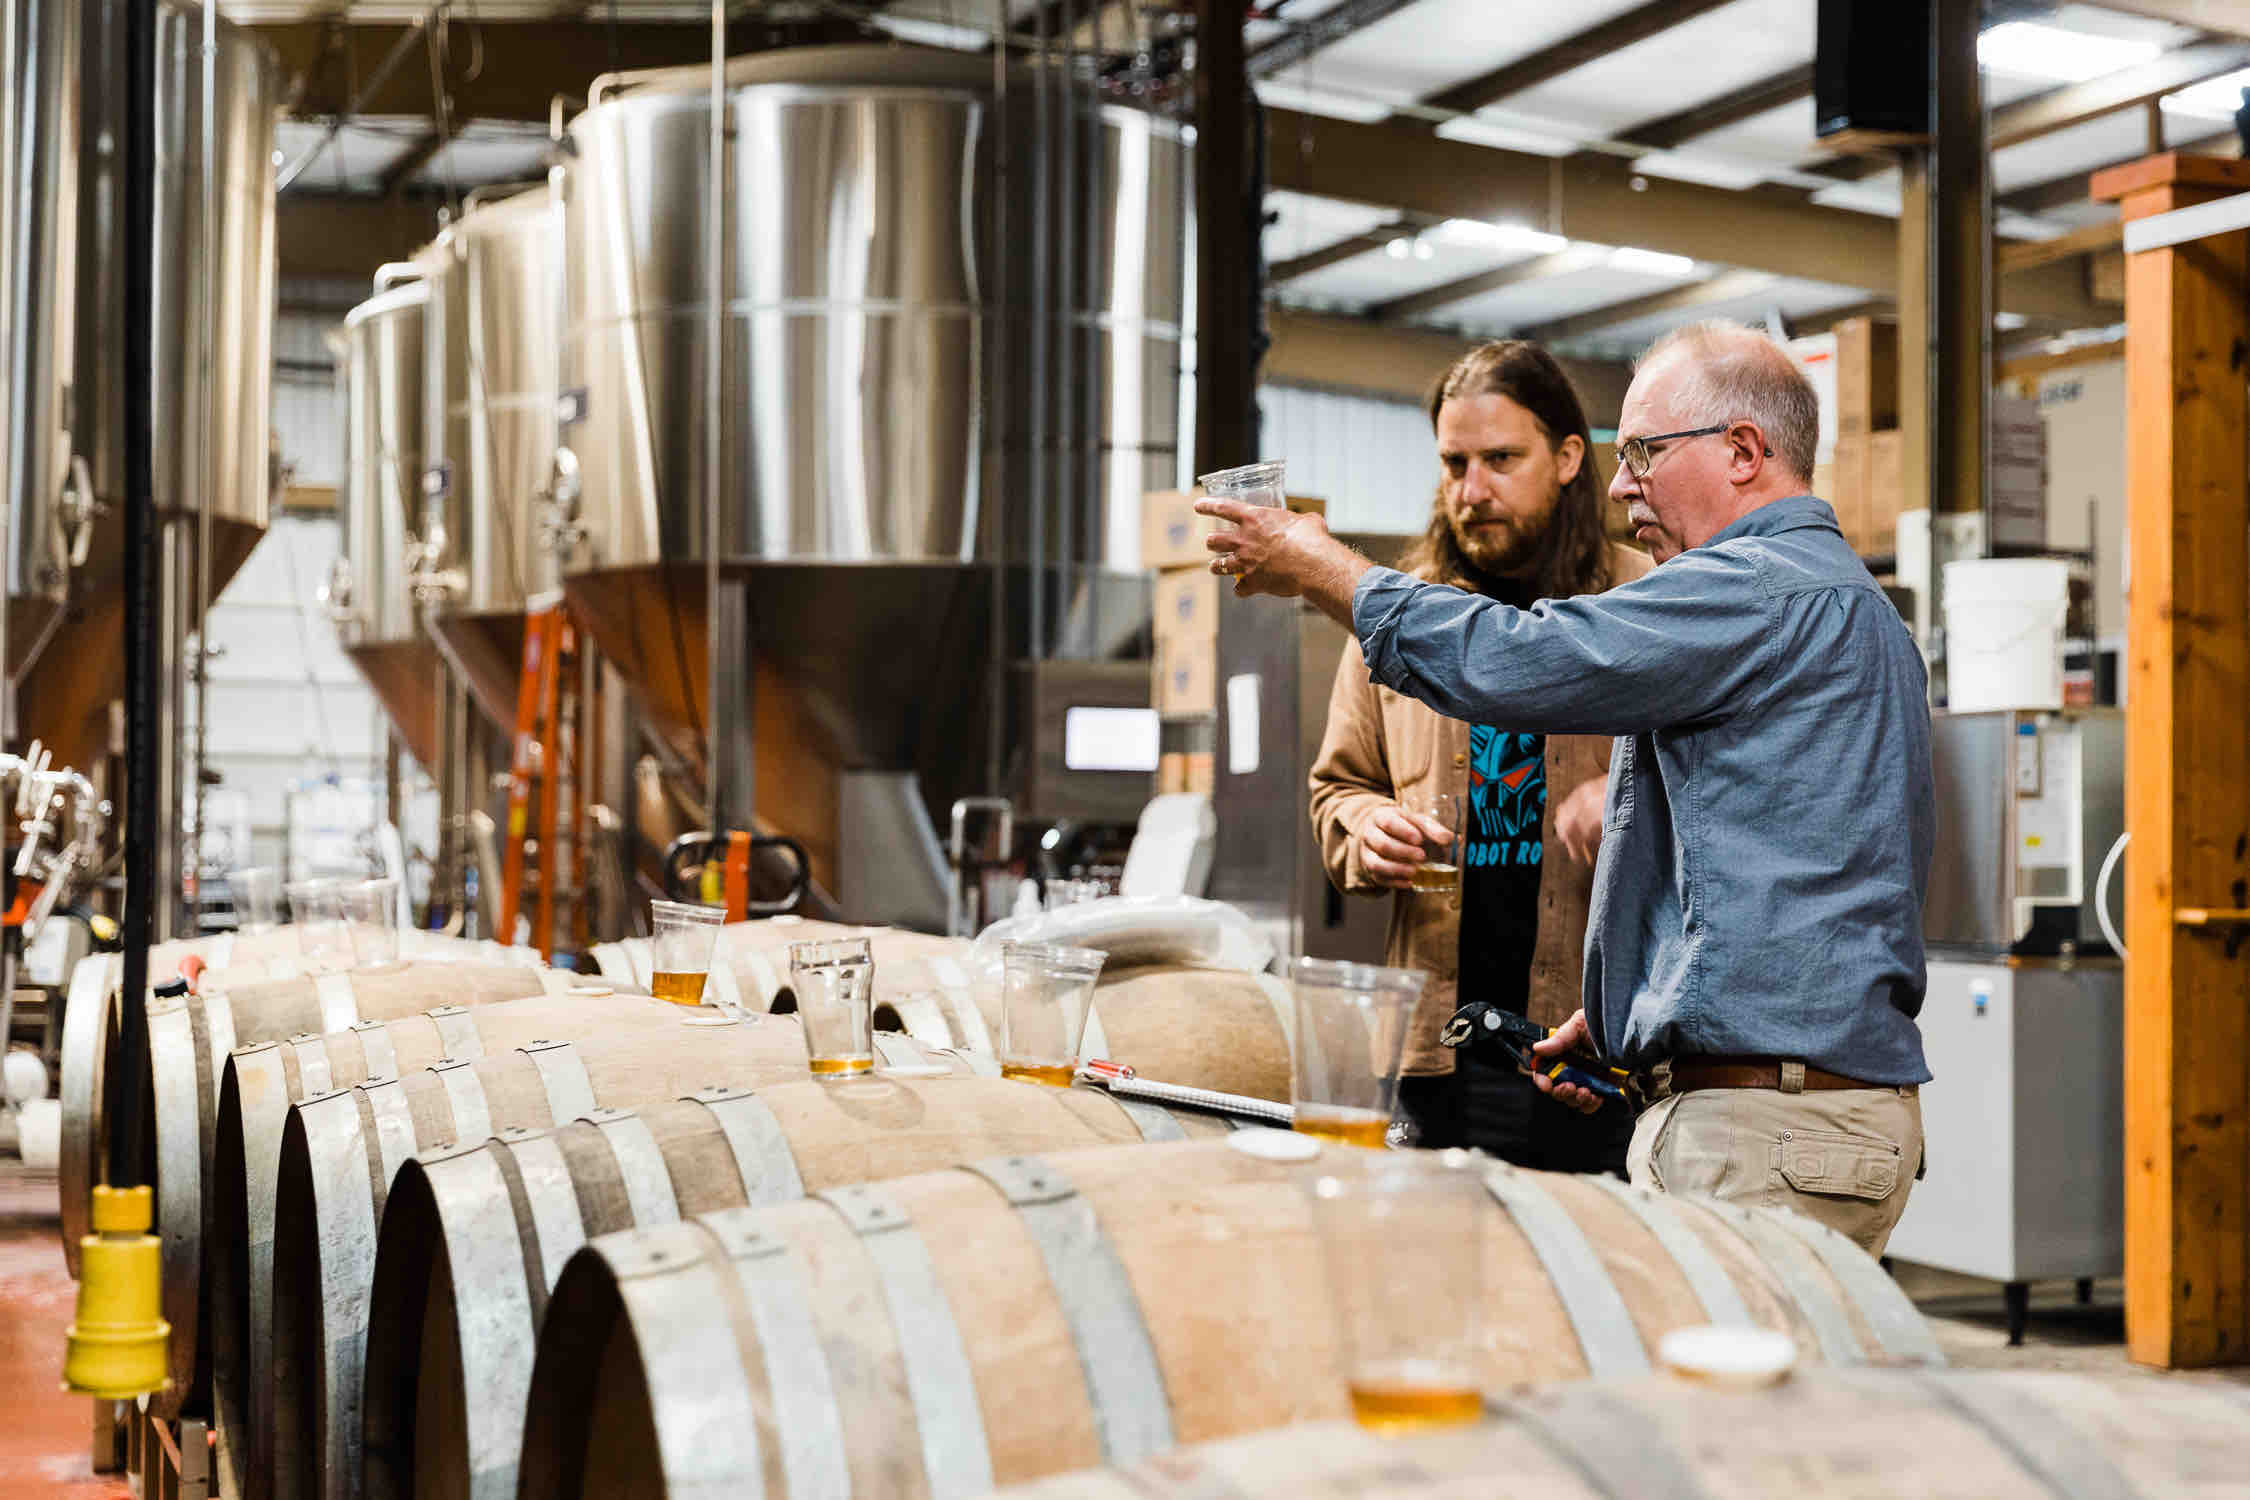 Ben Love and Darron Welch tasting through barrels to find the perfect blend for Bird-Day Volume II Tangerine Golden Ale Aged in Mezcal Barrels. (image courtesy of Pelican Brewing)